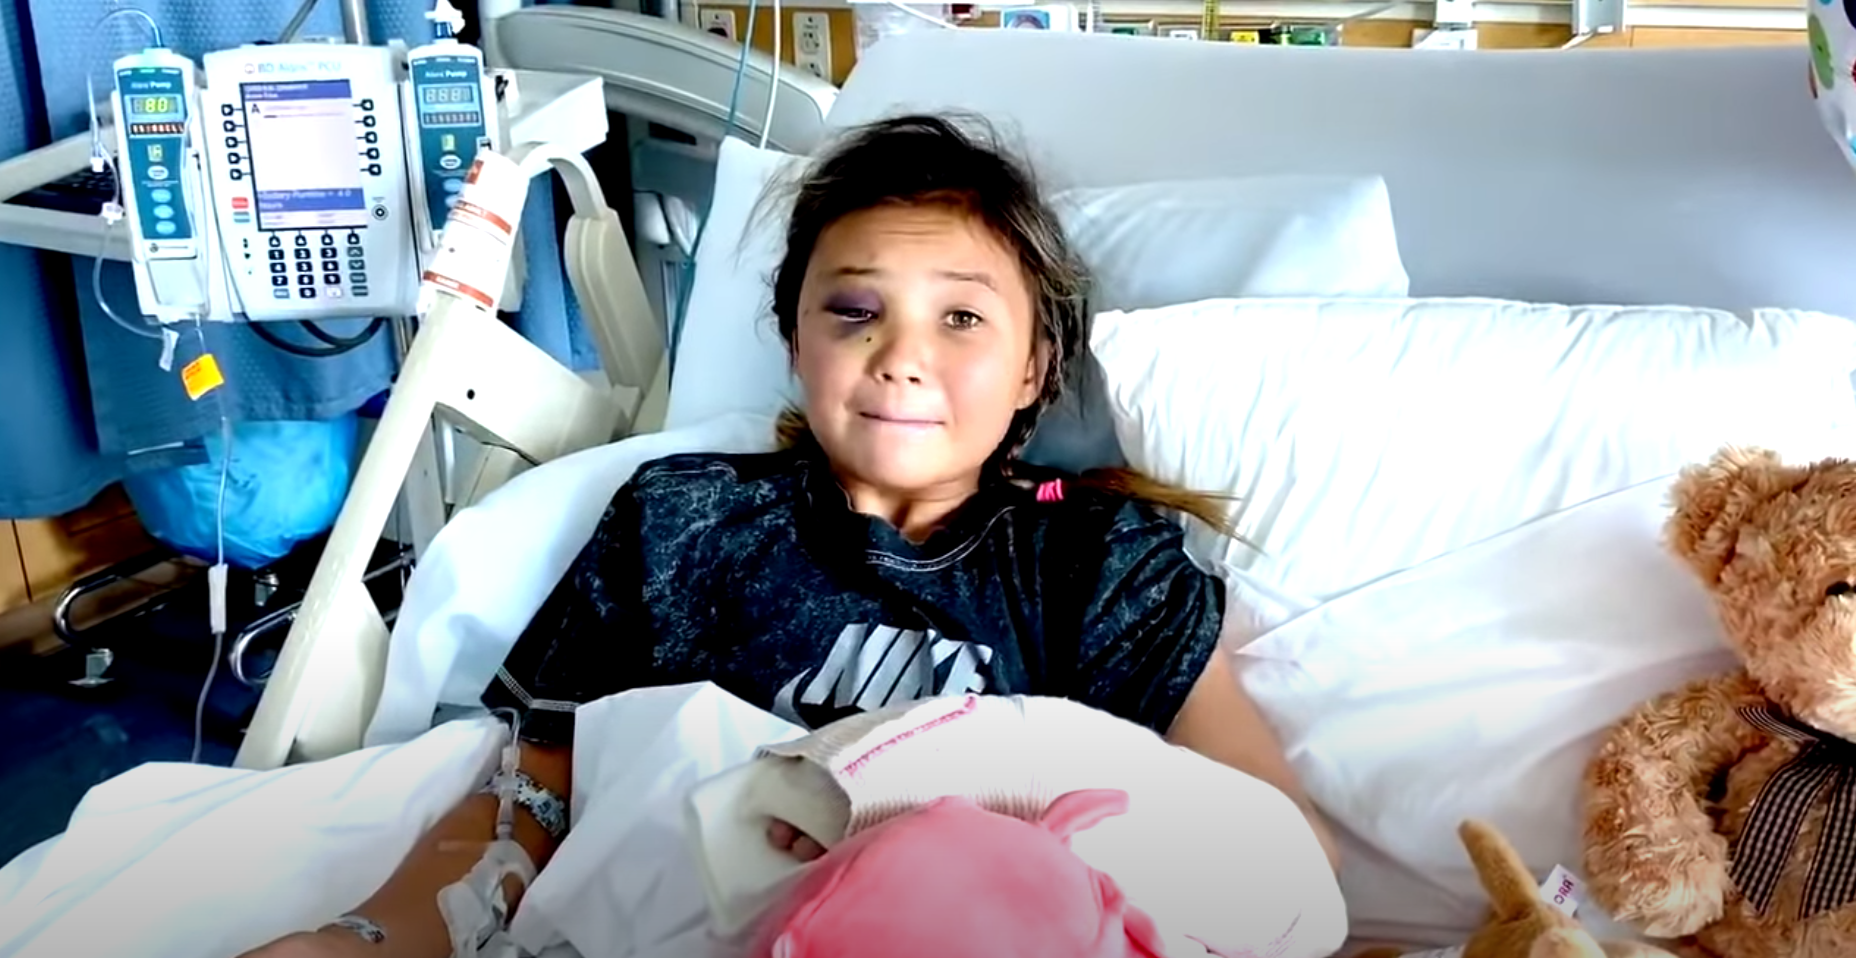 11 Year Old Skateboarder Sky Brown Hospitalized from Punishing Slam